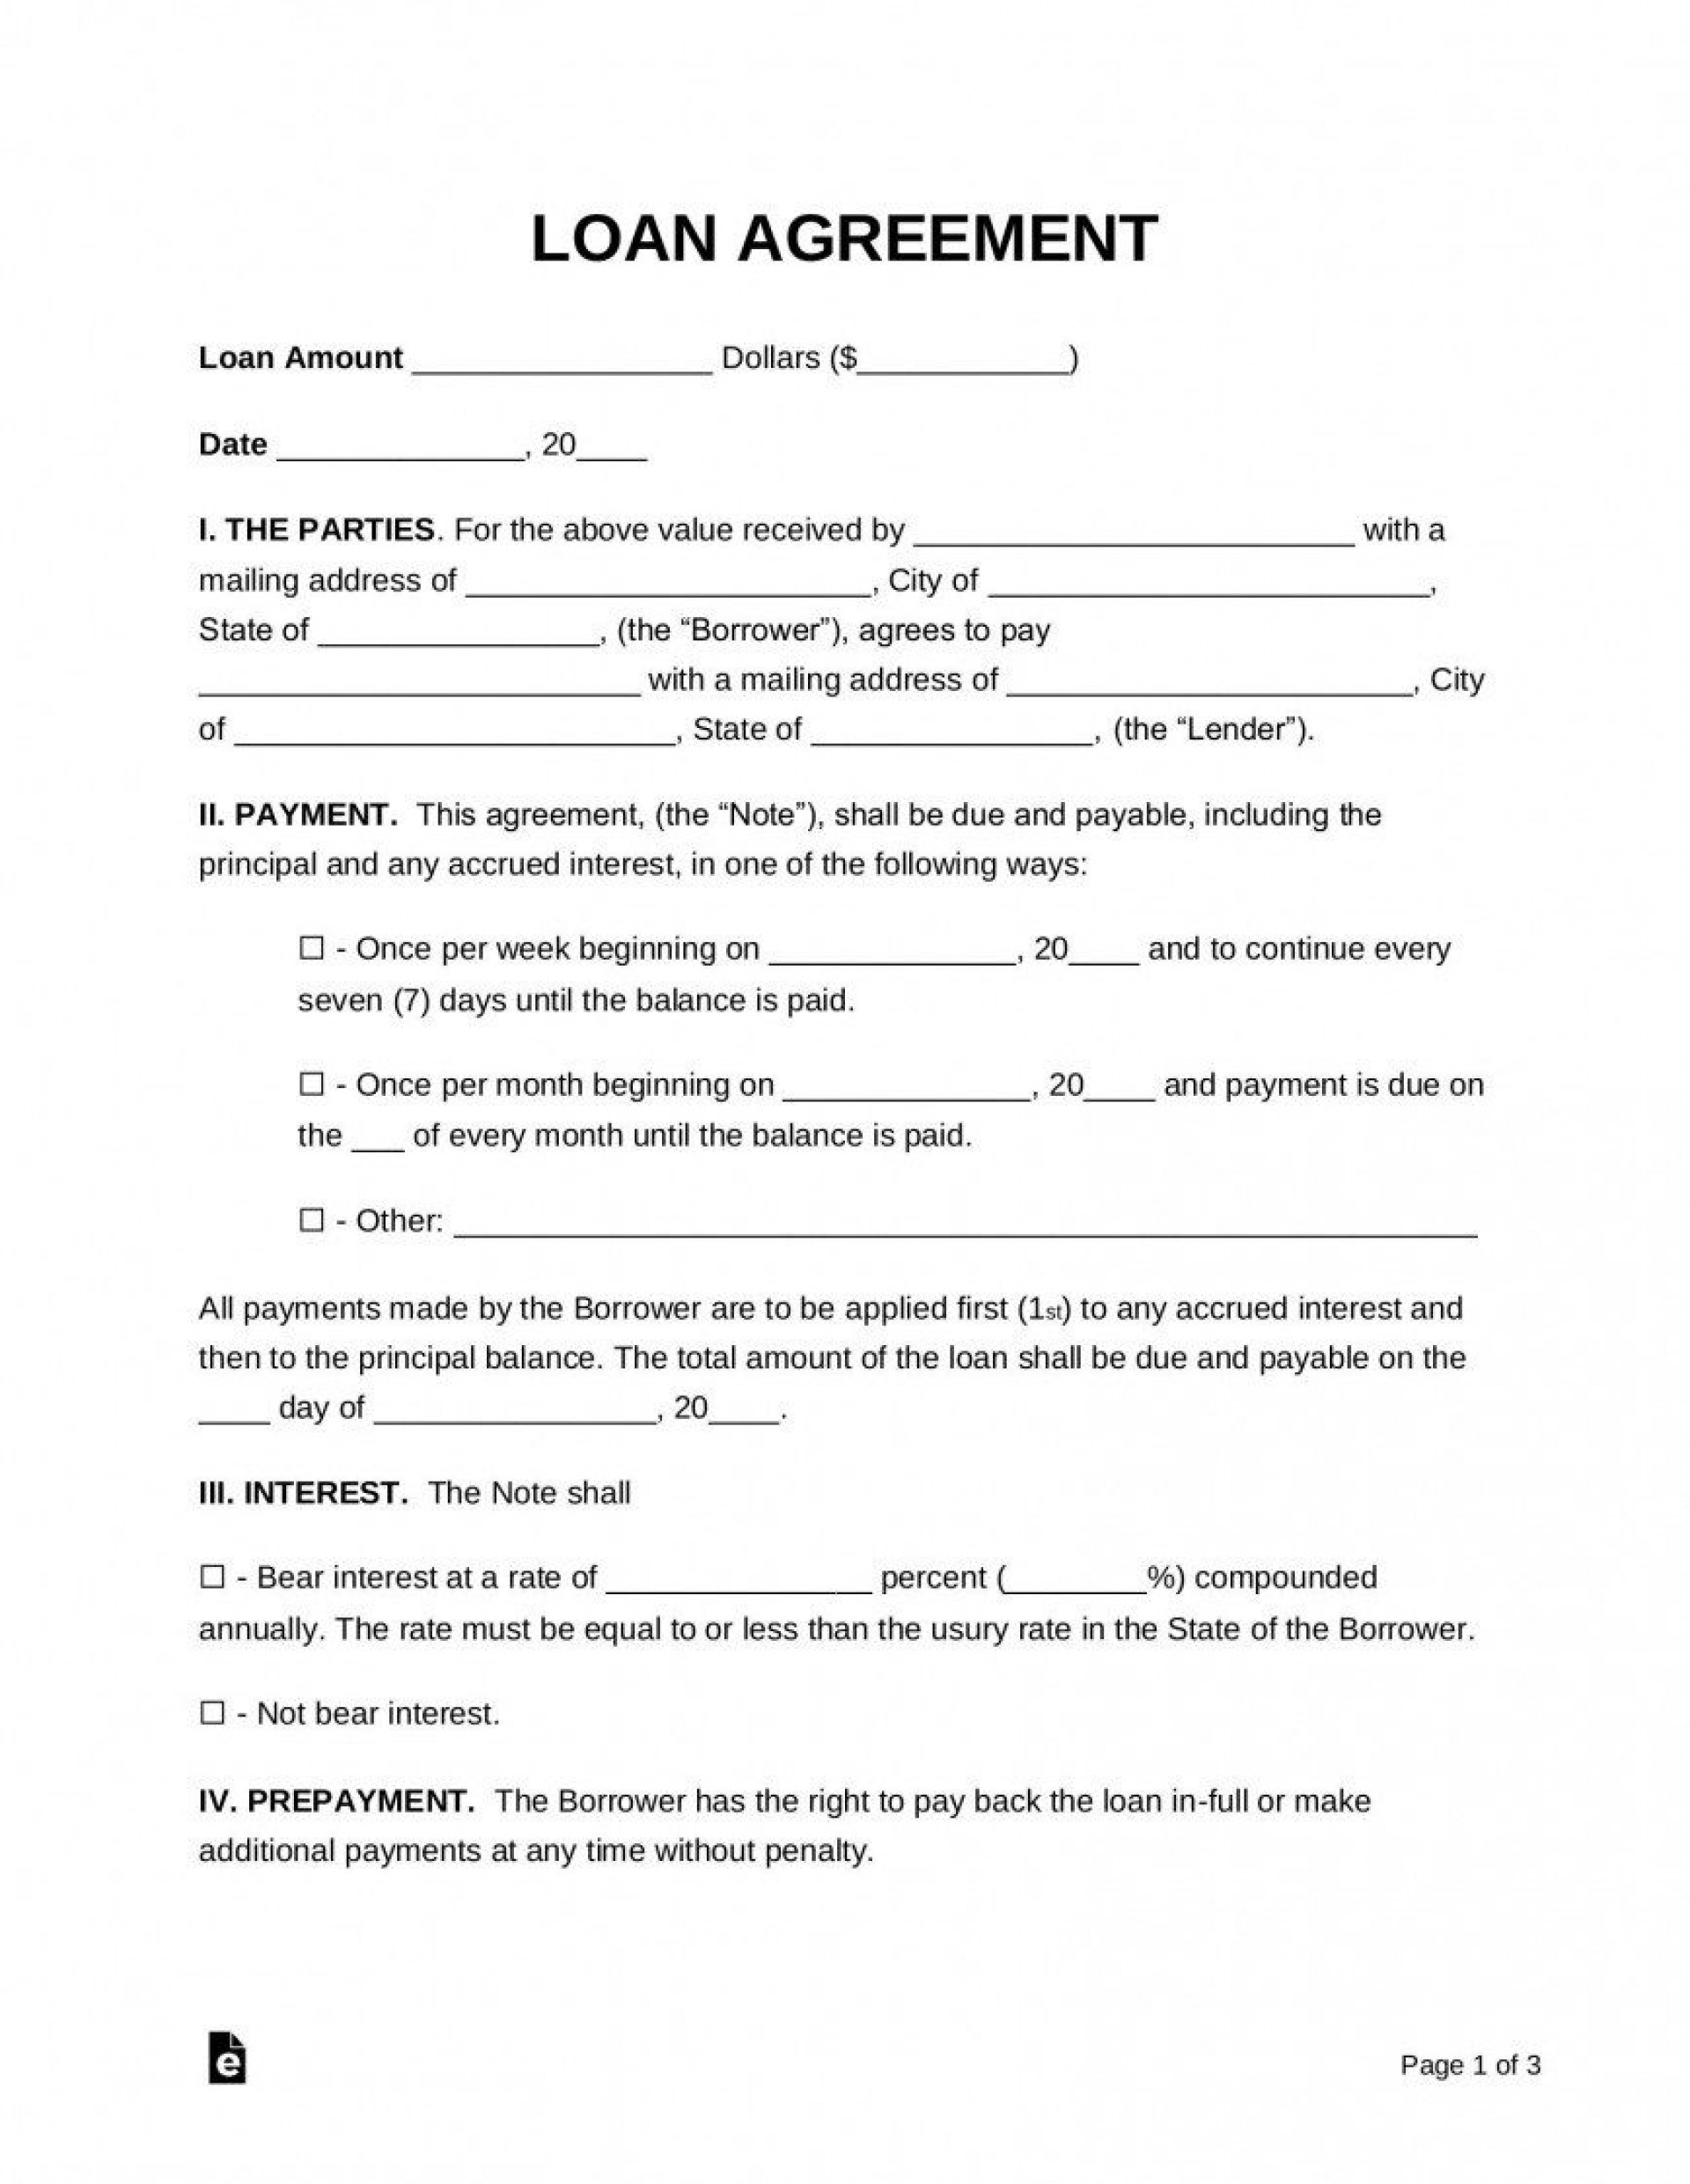 006 Exceptional Simple Family Loan Agreement Template Australia Inspiration 1920